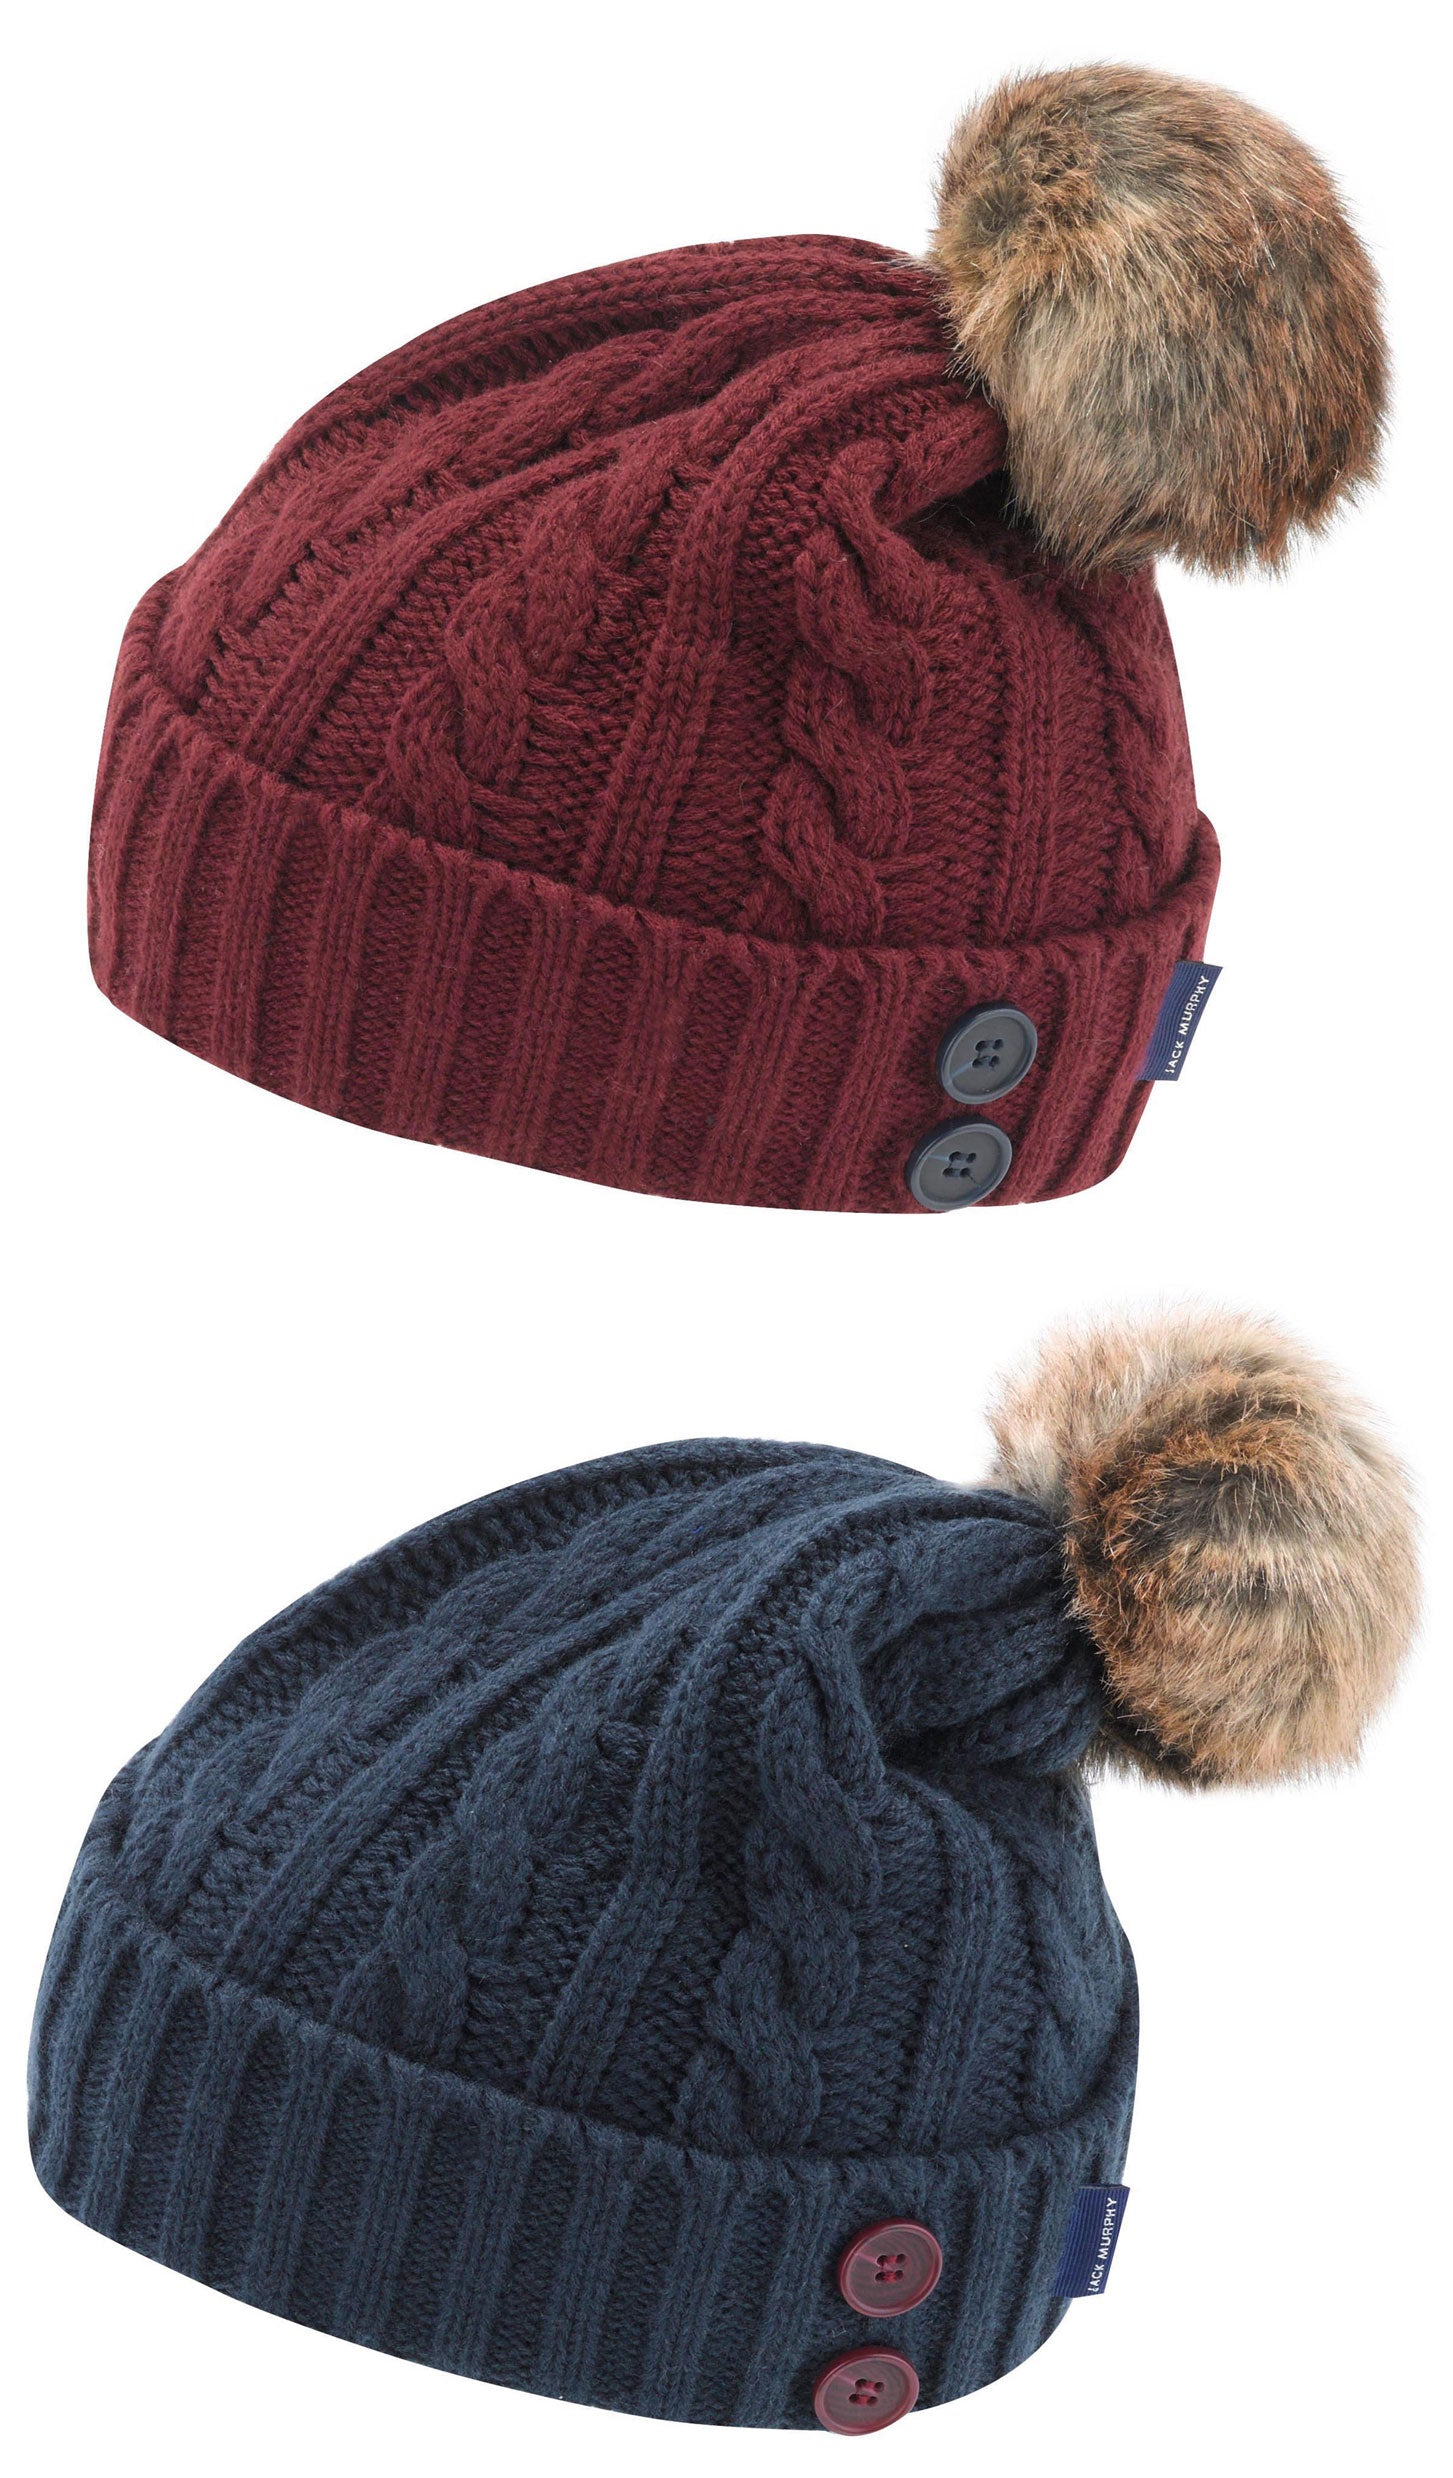 Jack Murphy Blessington Bobble Hat cable knit cap with a fur pom pom 9dbdcef8c35